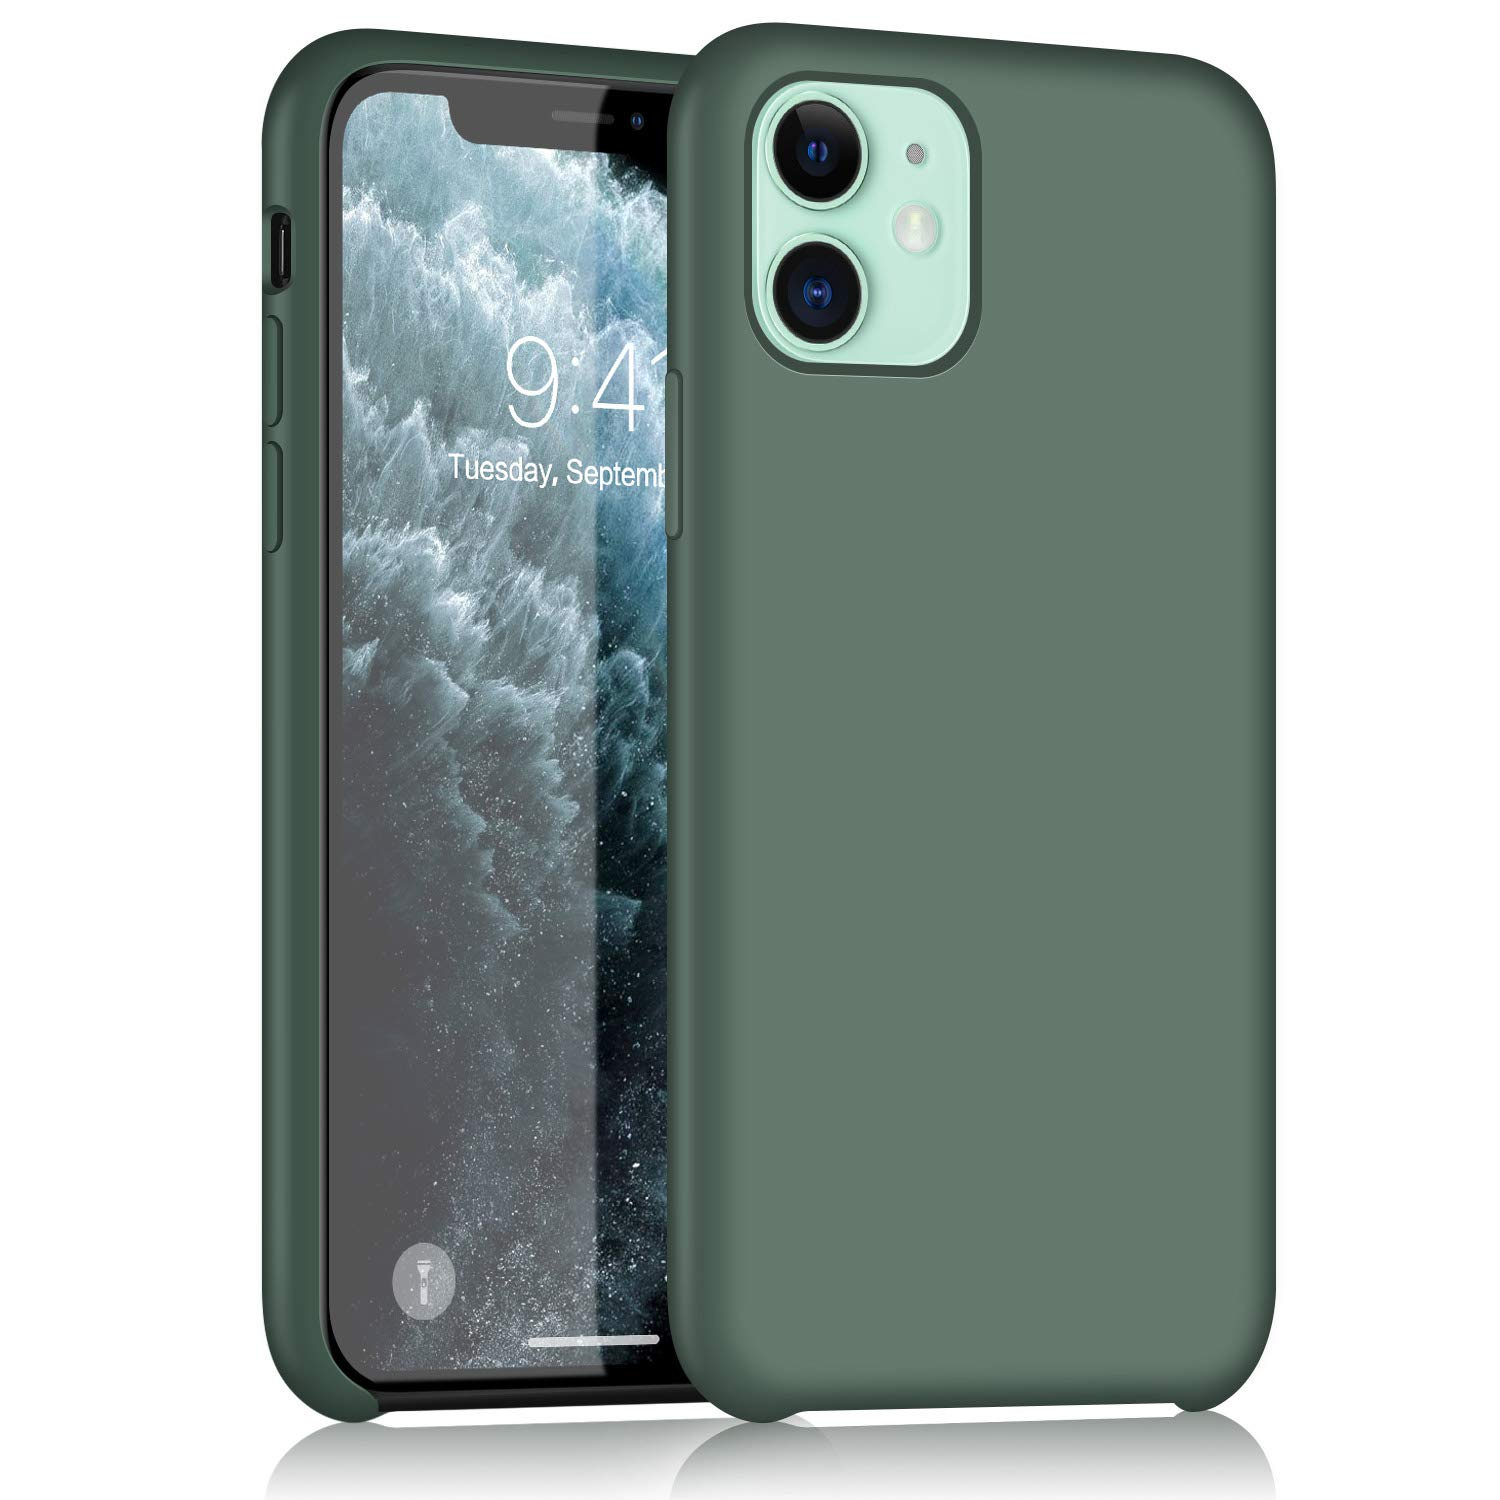 XSHNUO iPhone 11 Silicone Case, Liquid Silicone Gel Rubber Ultra Thin Case with Soft Microfiber Cloth Lining Cushion for iPhone 11 (2019) 6.1 inch (Pine Green)